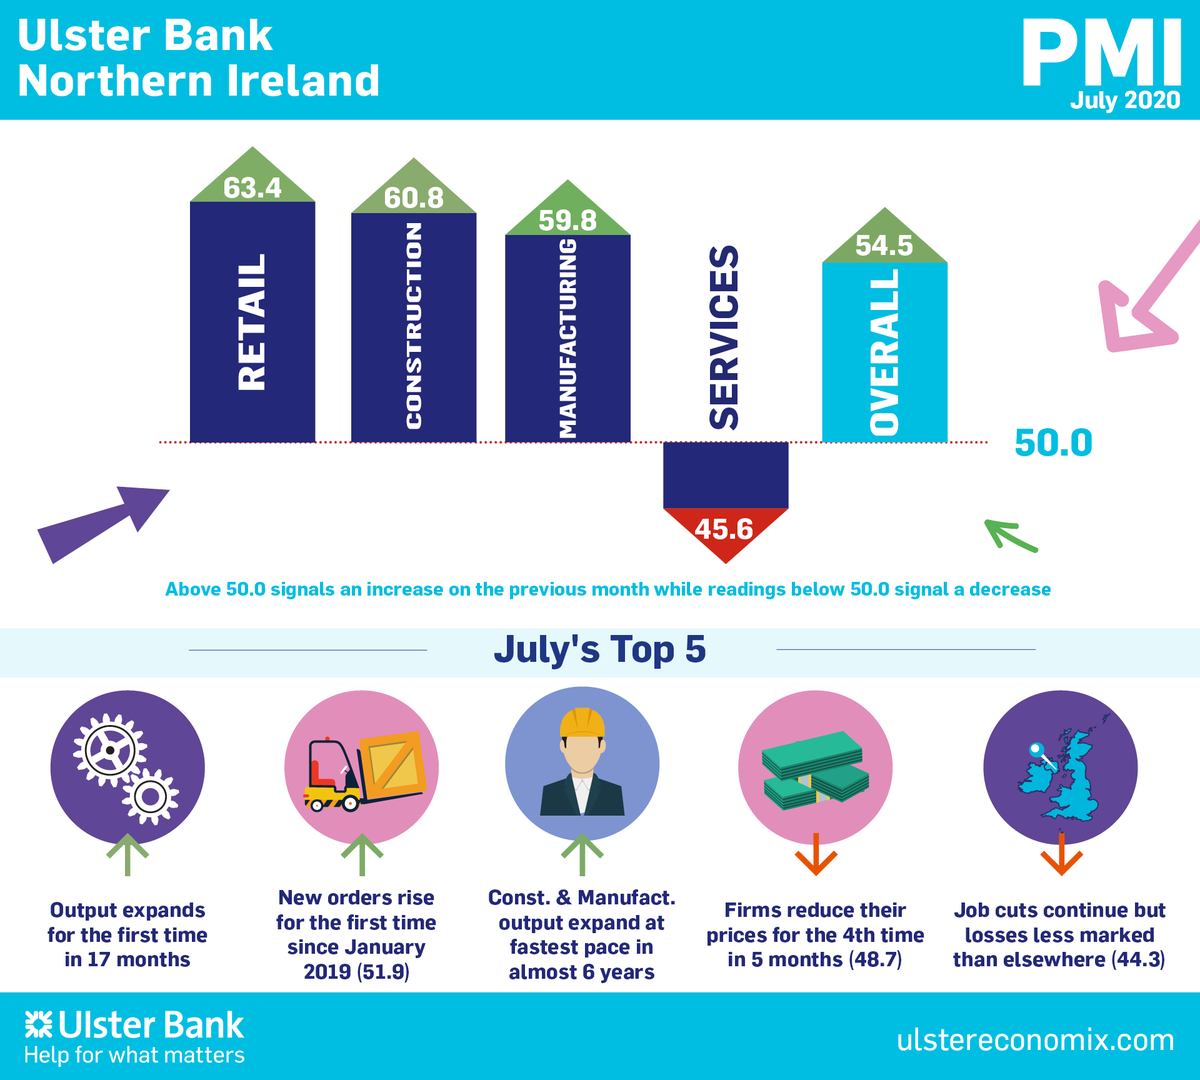 The latest Ulster Bank PMI report shows that companies in Northern Ireland have increased their output amid signs of a recovery being underway following sharp falls earlier in the year.  Find out more: https://buff.ly/3ilbU4i pic.twitter.com/krk1VWOhYP